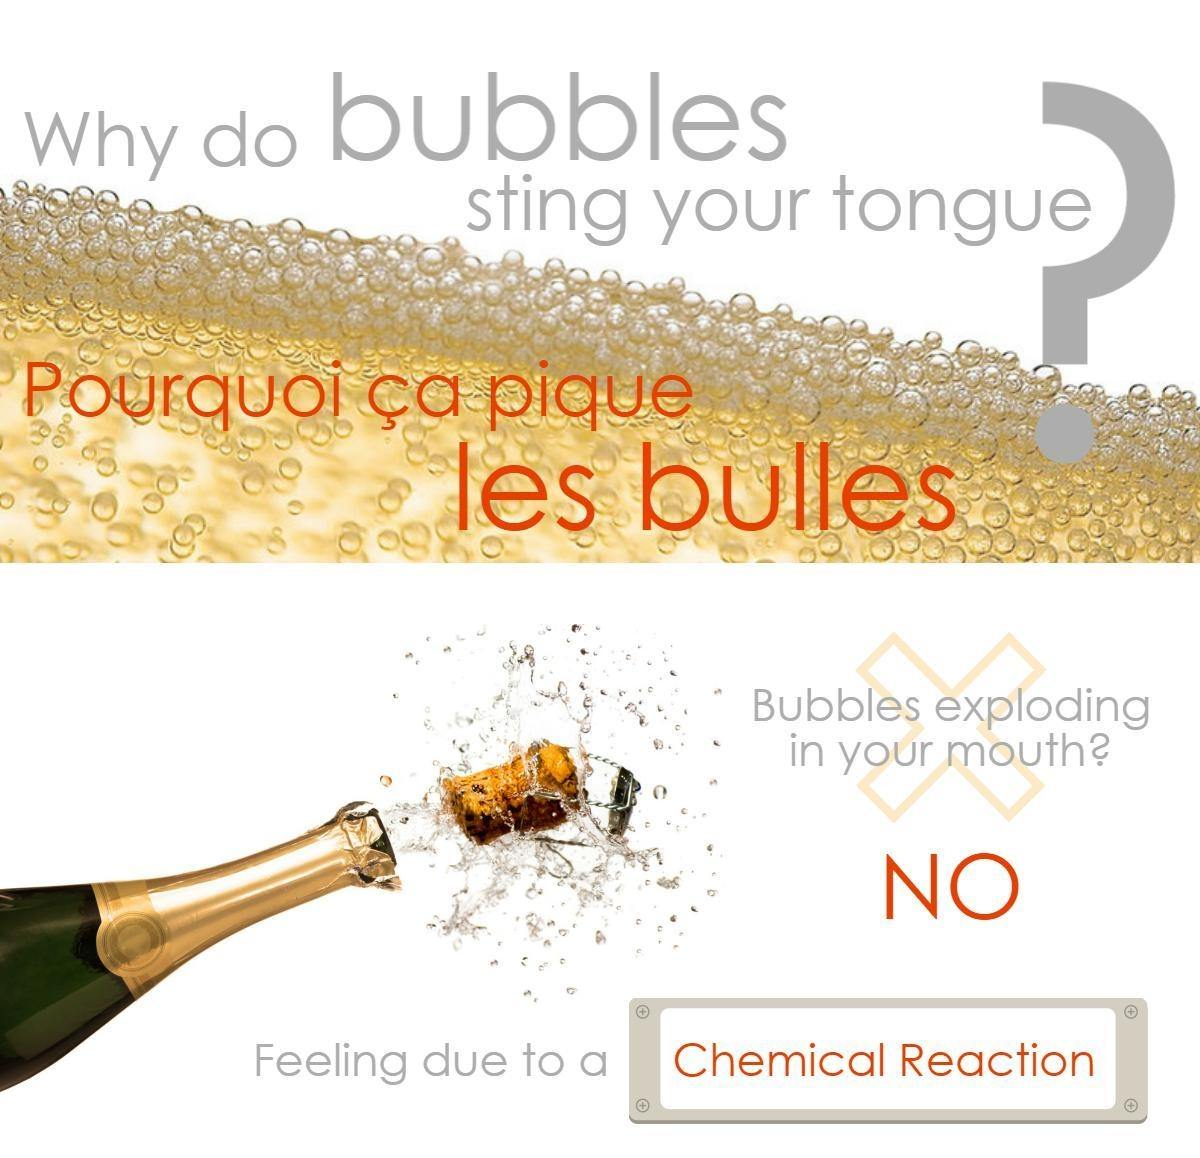 why does bubbles sting your tongue? pourquoi ça pique les bulles ?